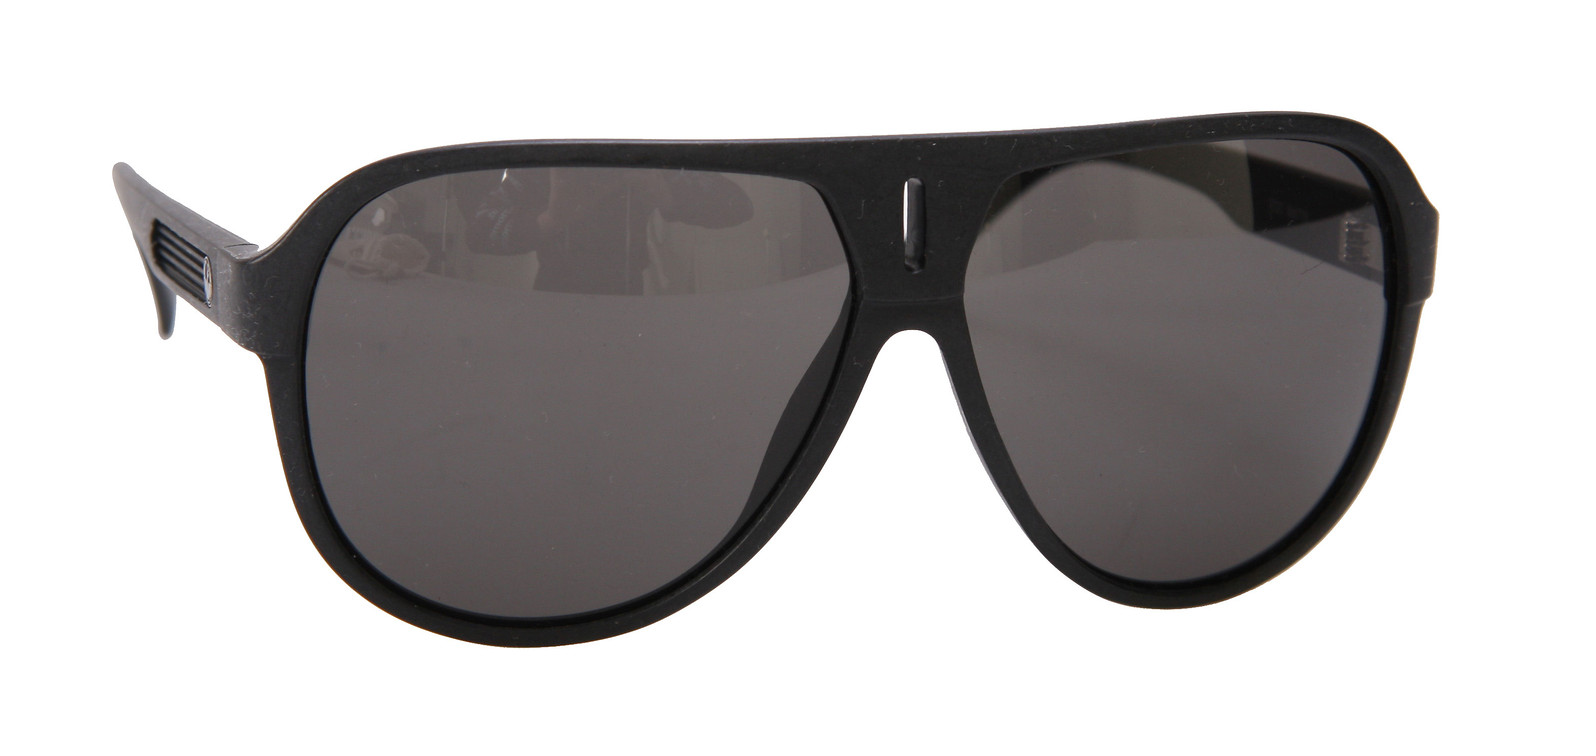 Dragon Experience Eco Sunglasses Matte Black/Grey Lens  dragon-experience-eco-sngls-mttblkgry-09.jpg